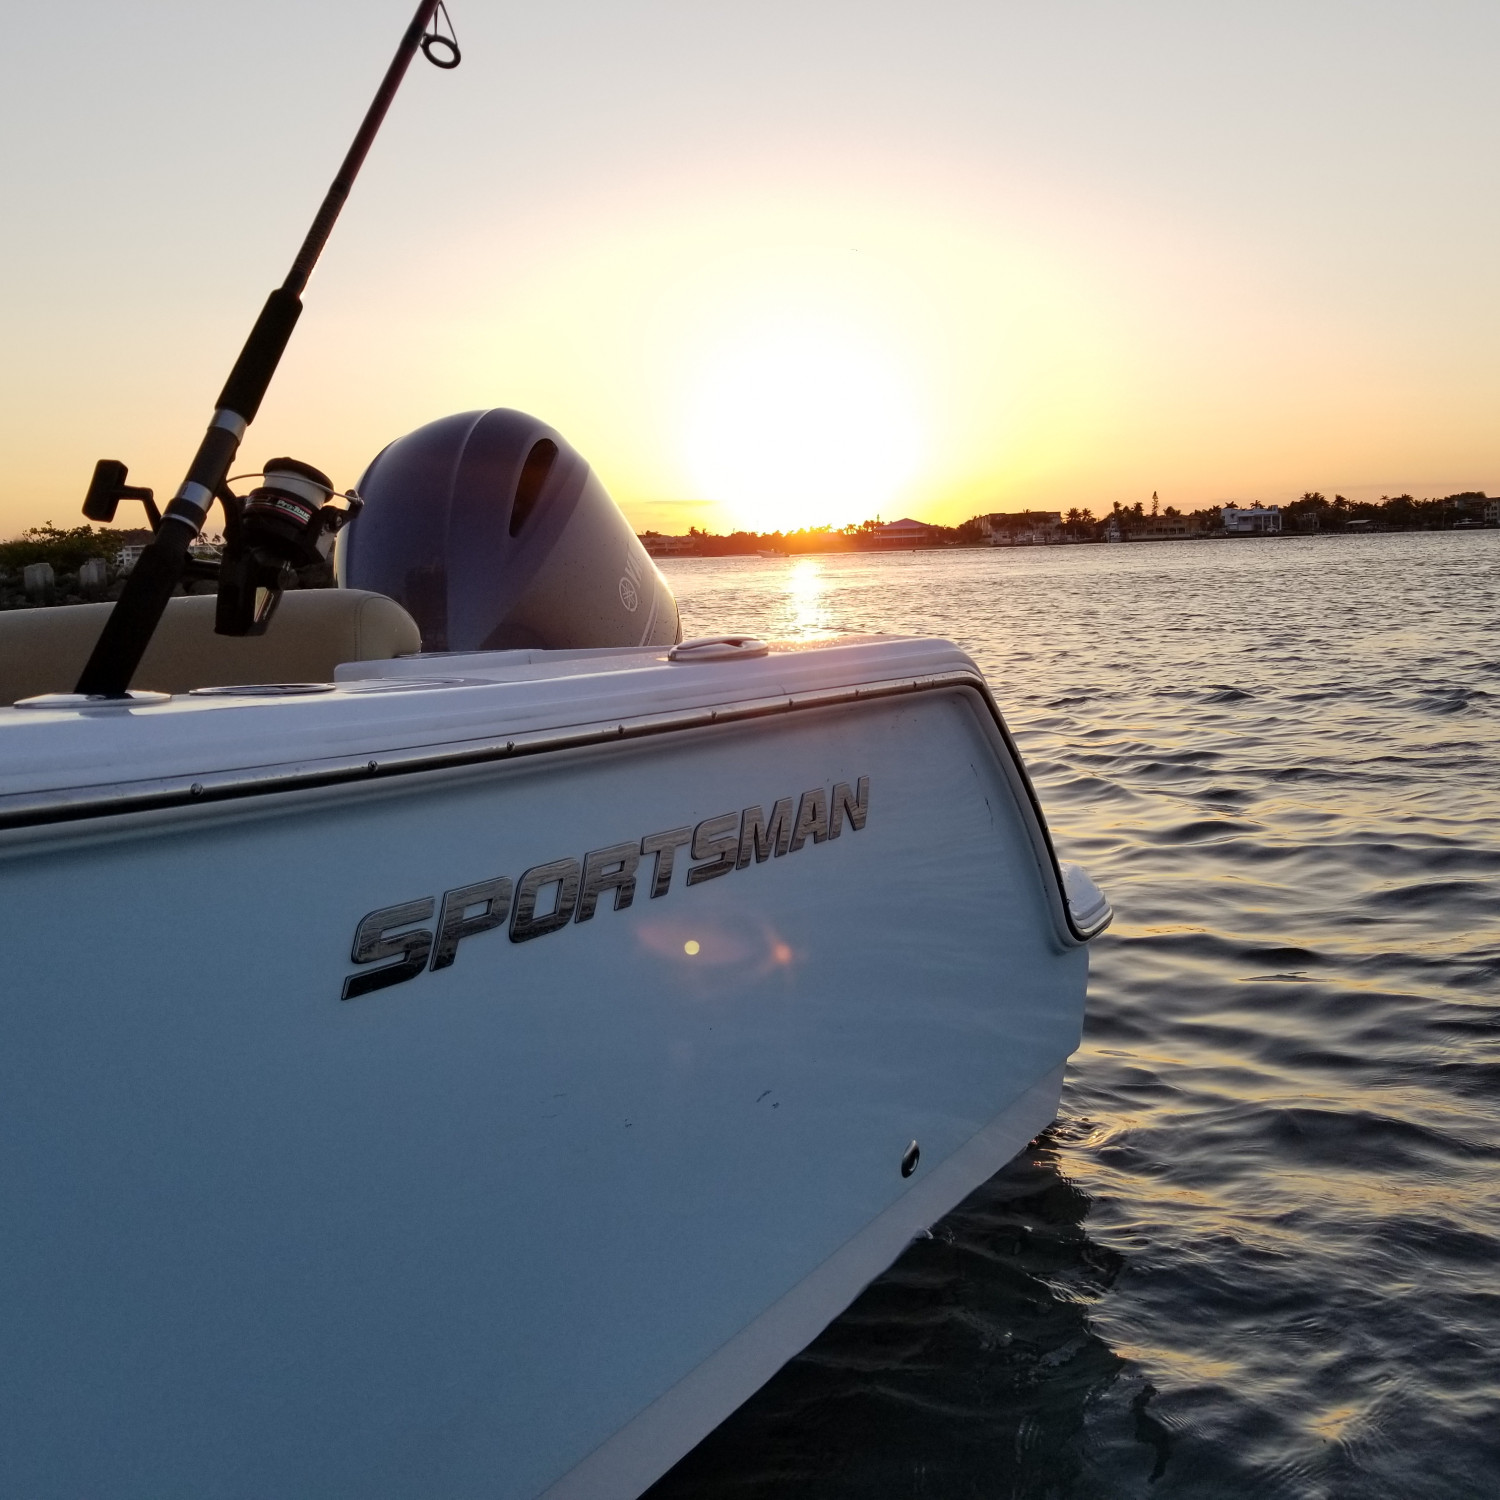 Title: A Sportsman Sunset - On board their Sportsman Open 232 Center Console - Location: Beer Can Island, Boynton Beach,  FL. Participating in the Photo Contest #SportsmanApril2018